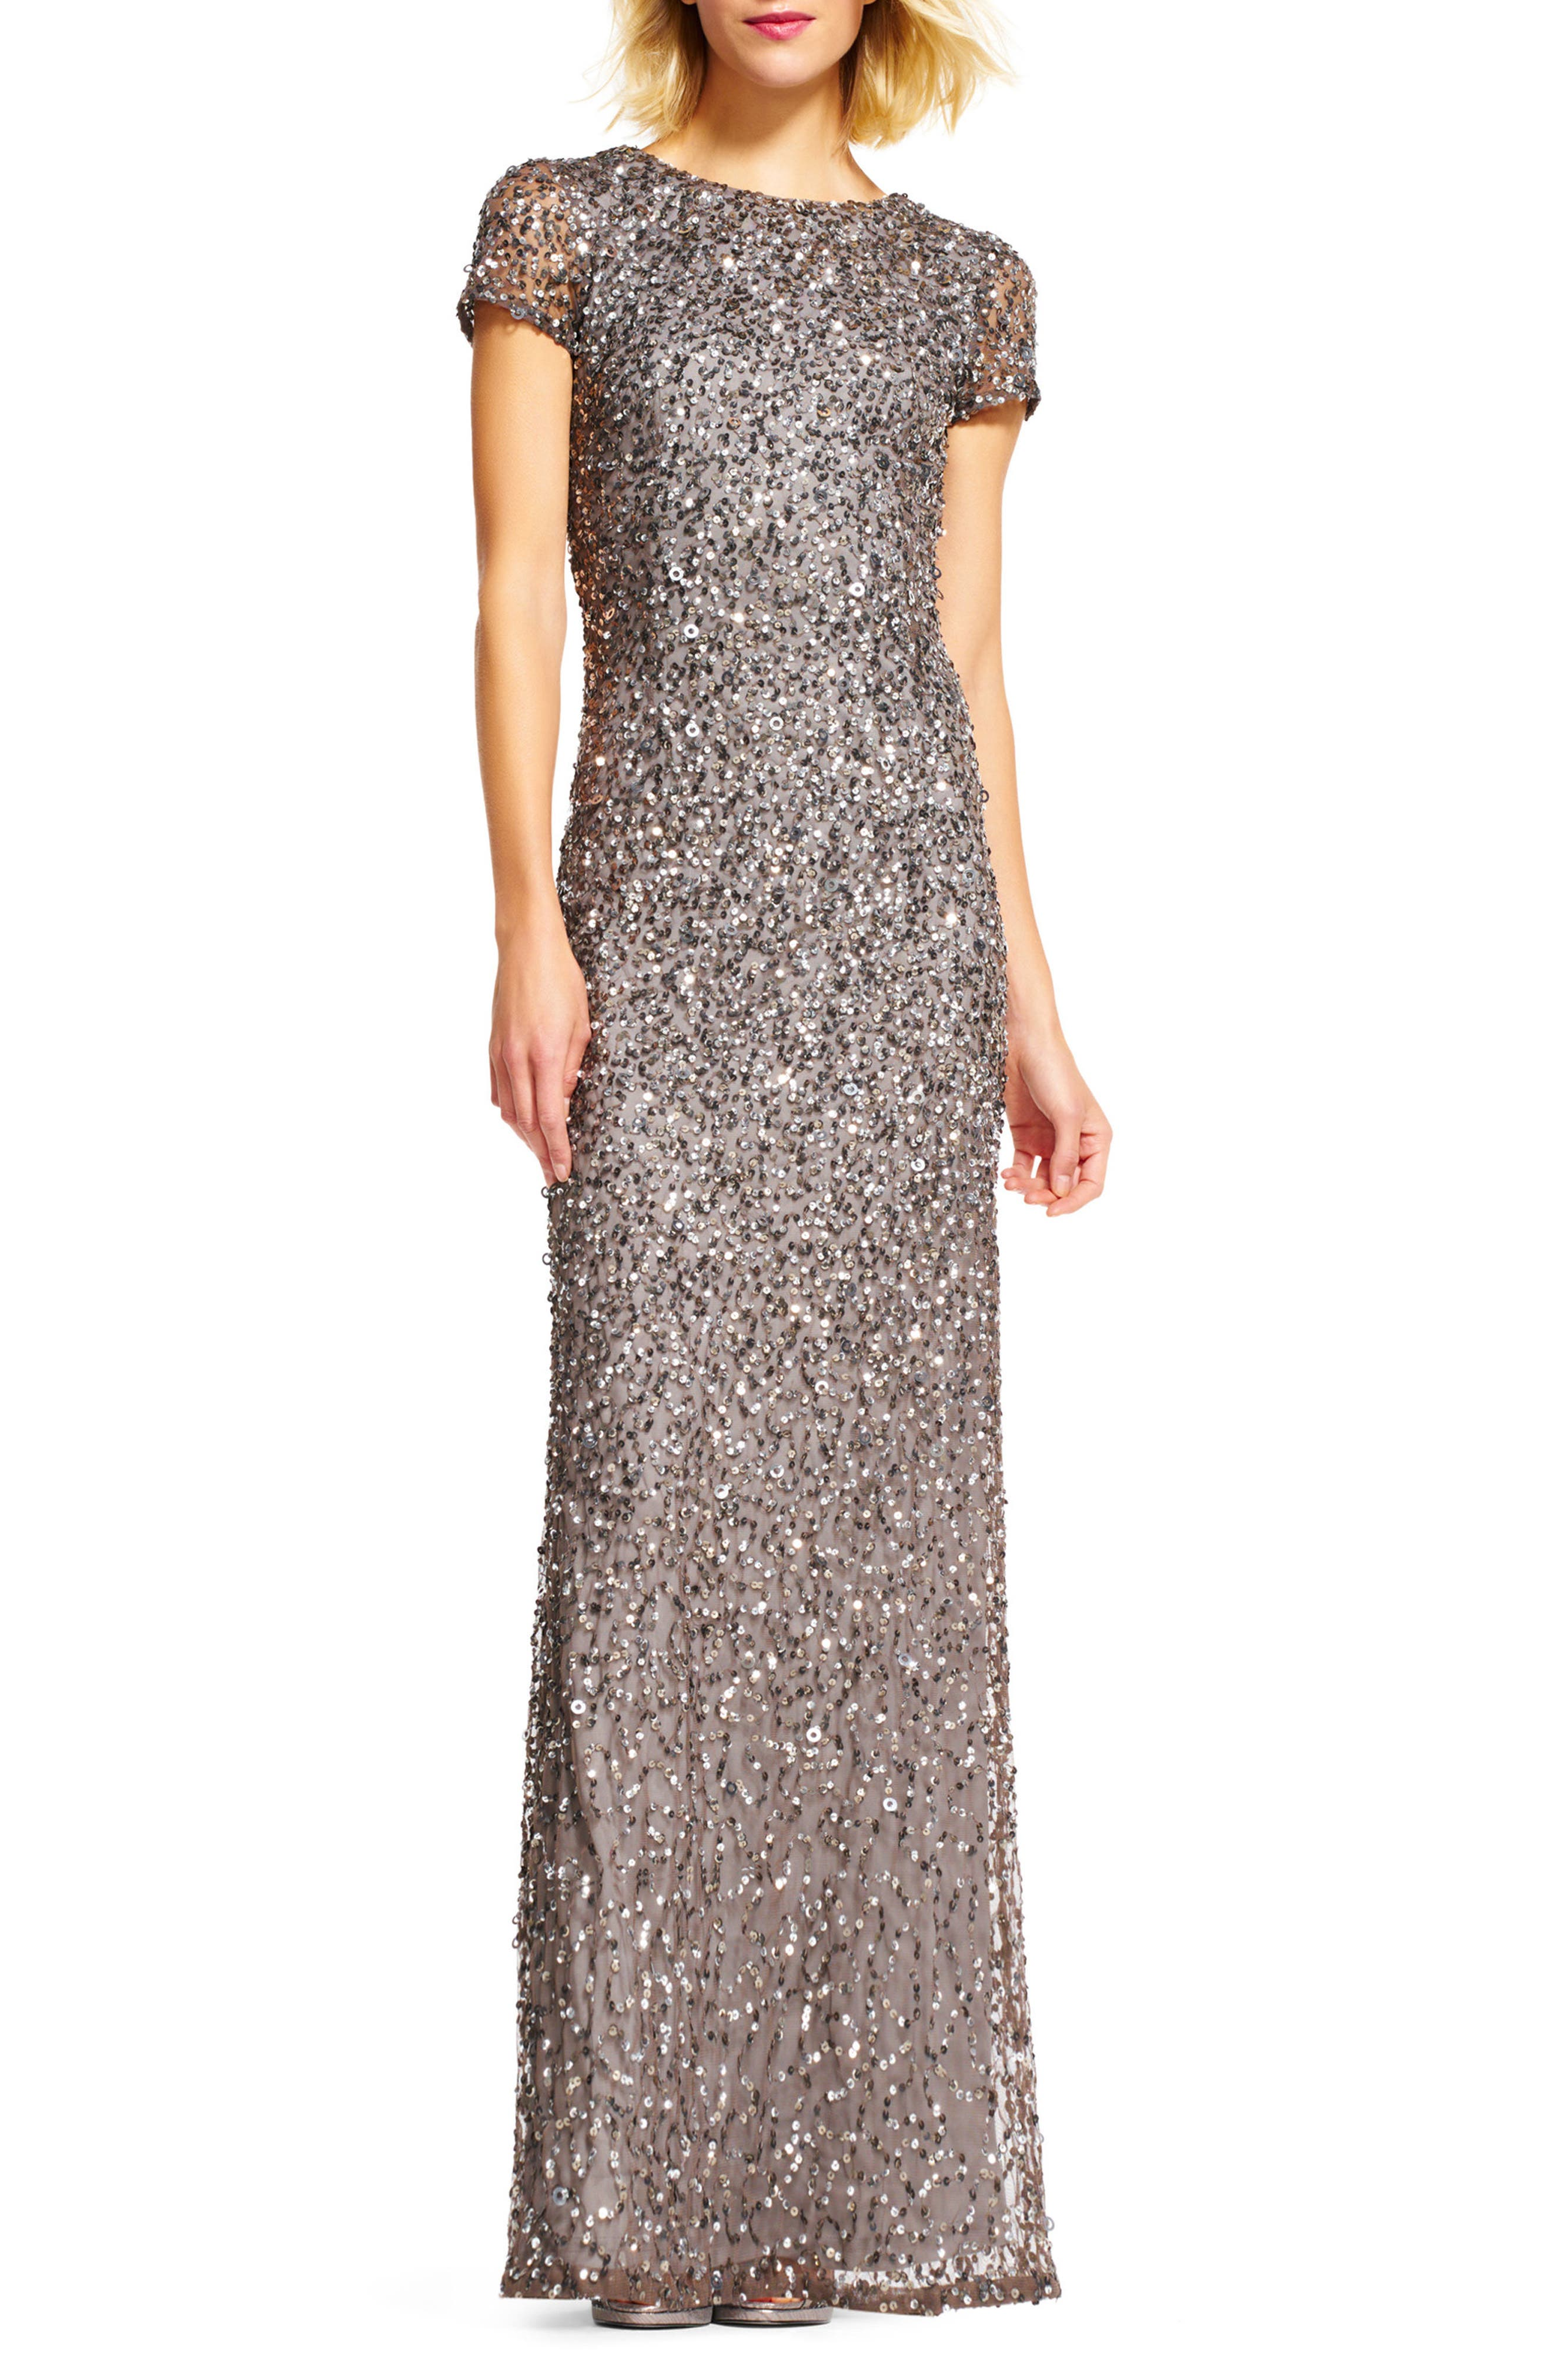 Bridesmaid wedding party dresses nordstrom adrianna papell short sleeve sequin mesh gown regular petite ombrellifo Gallery